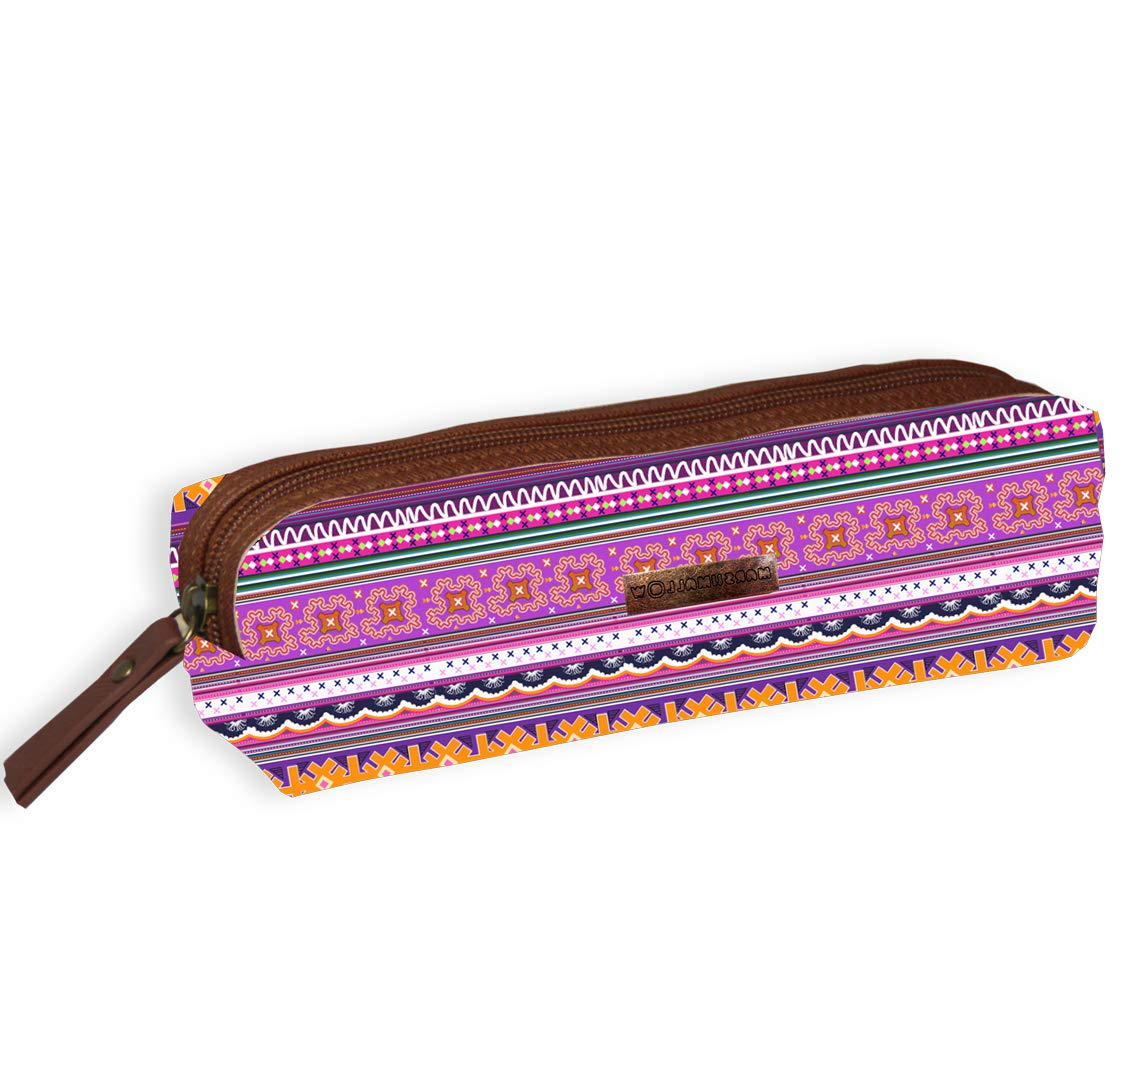 Jacob & Co. Pencilcase Ethnic – Estuche (20 cm), Color Rosa